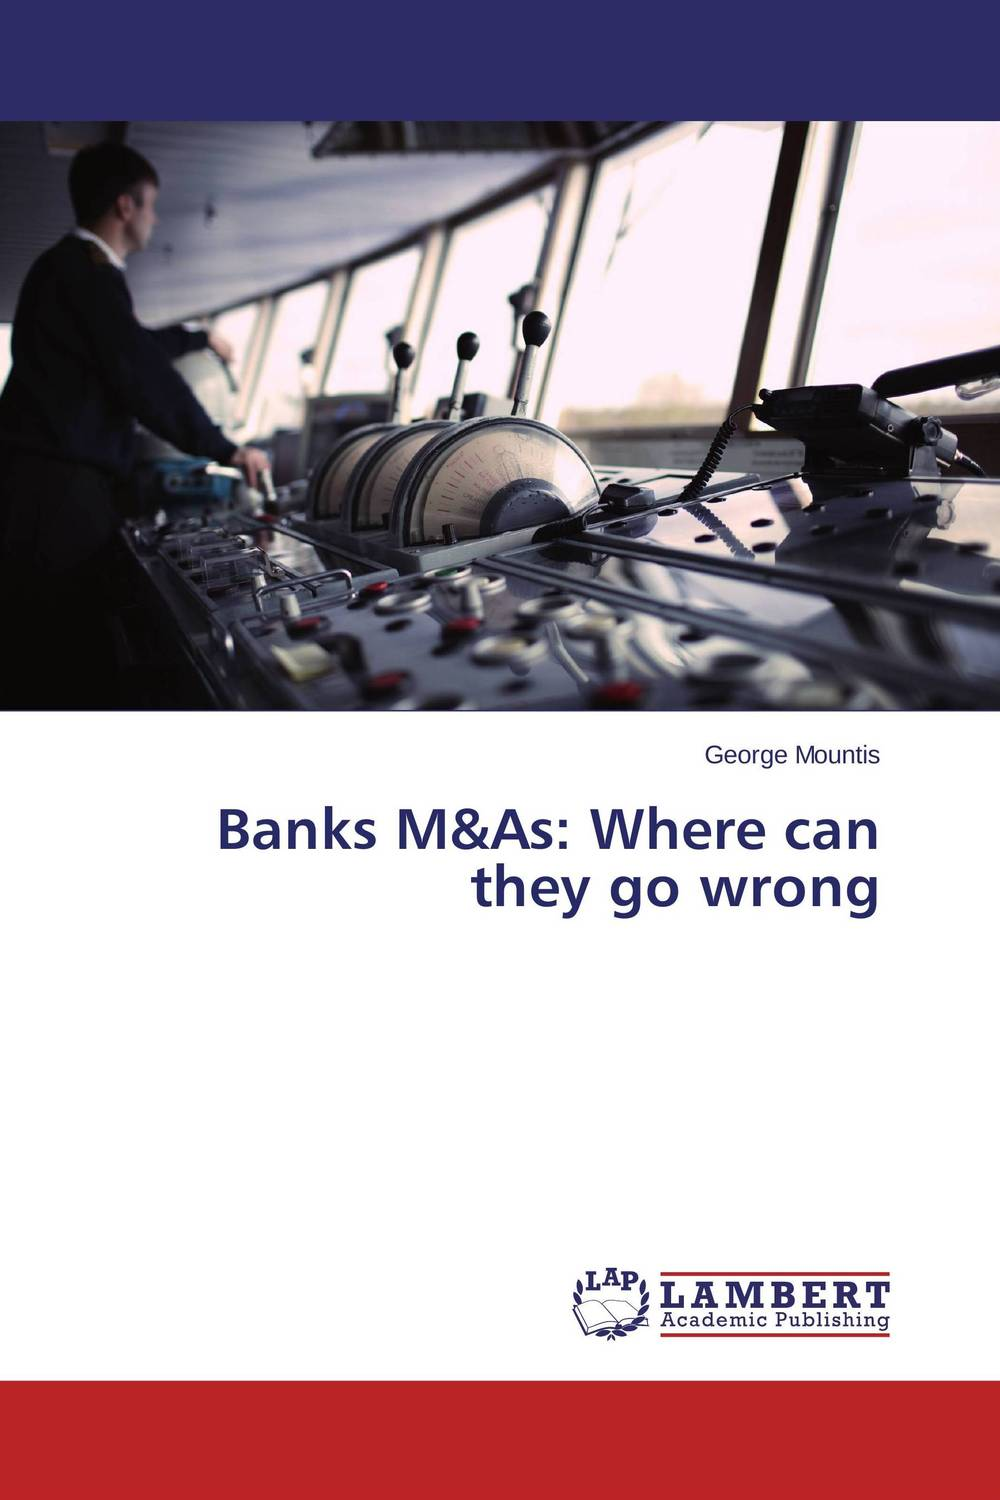 Banks M&As: Where can they go wrong